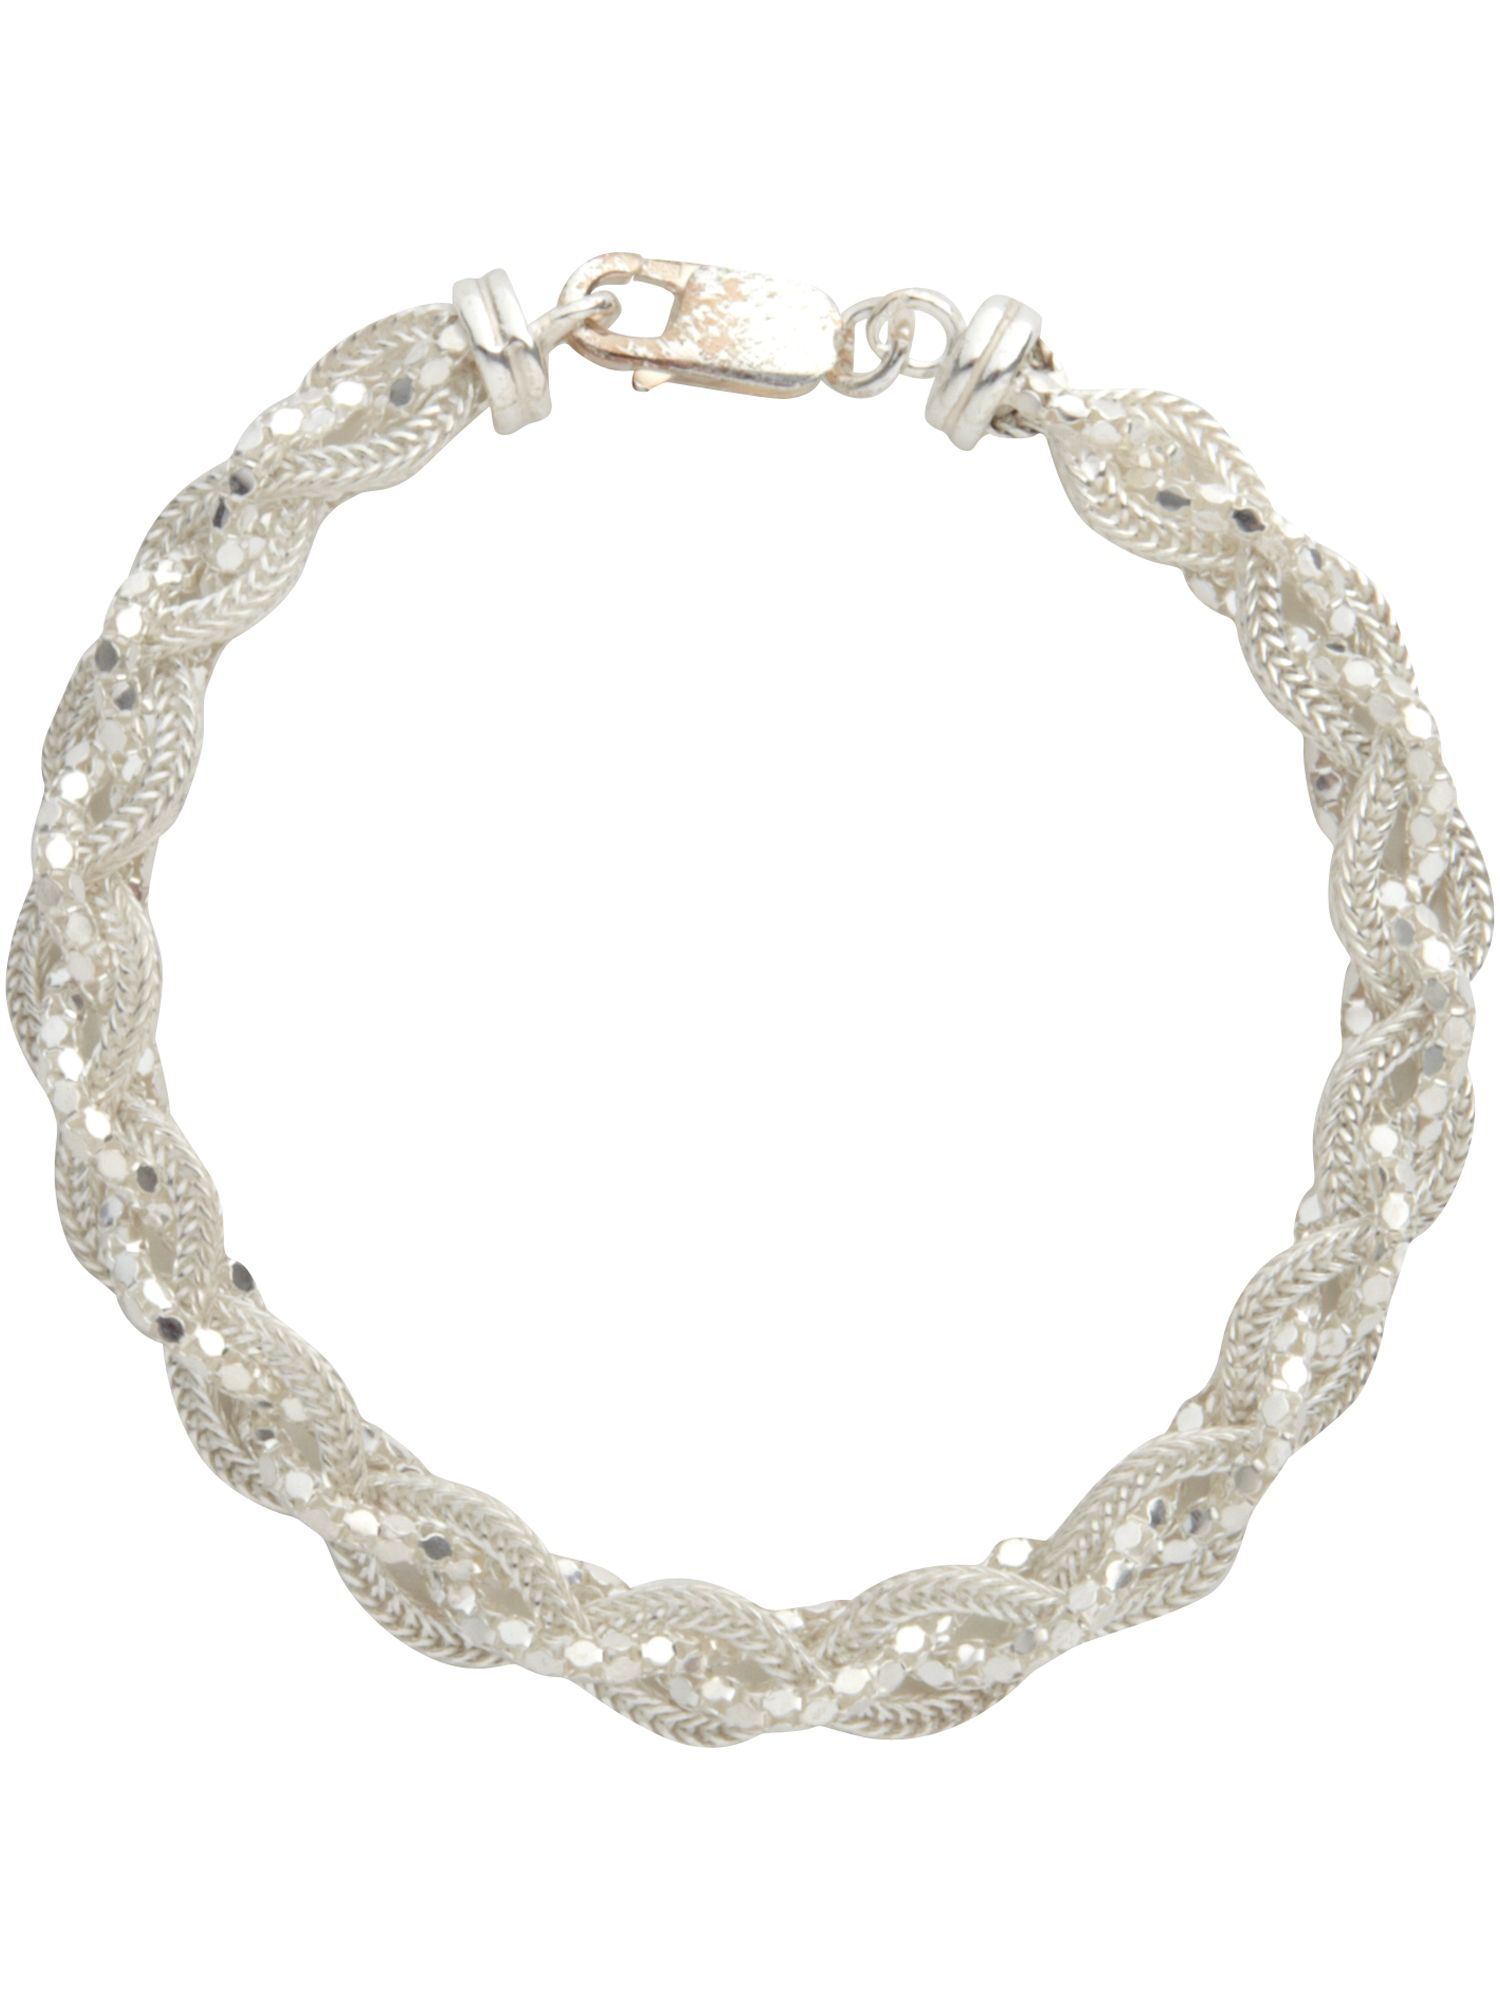 Twist chain sterling silver bracelet